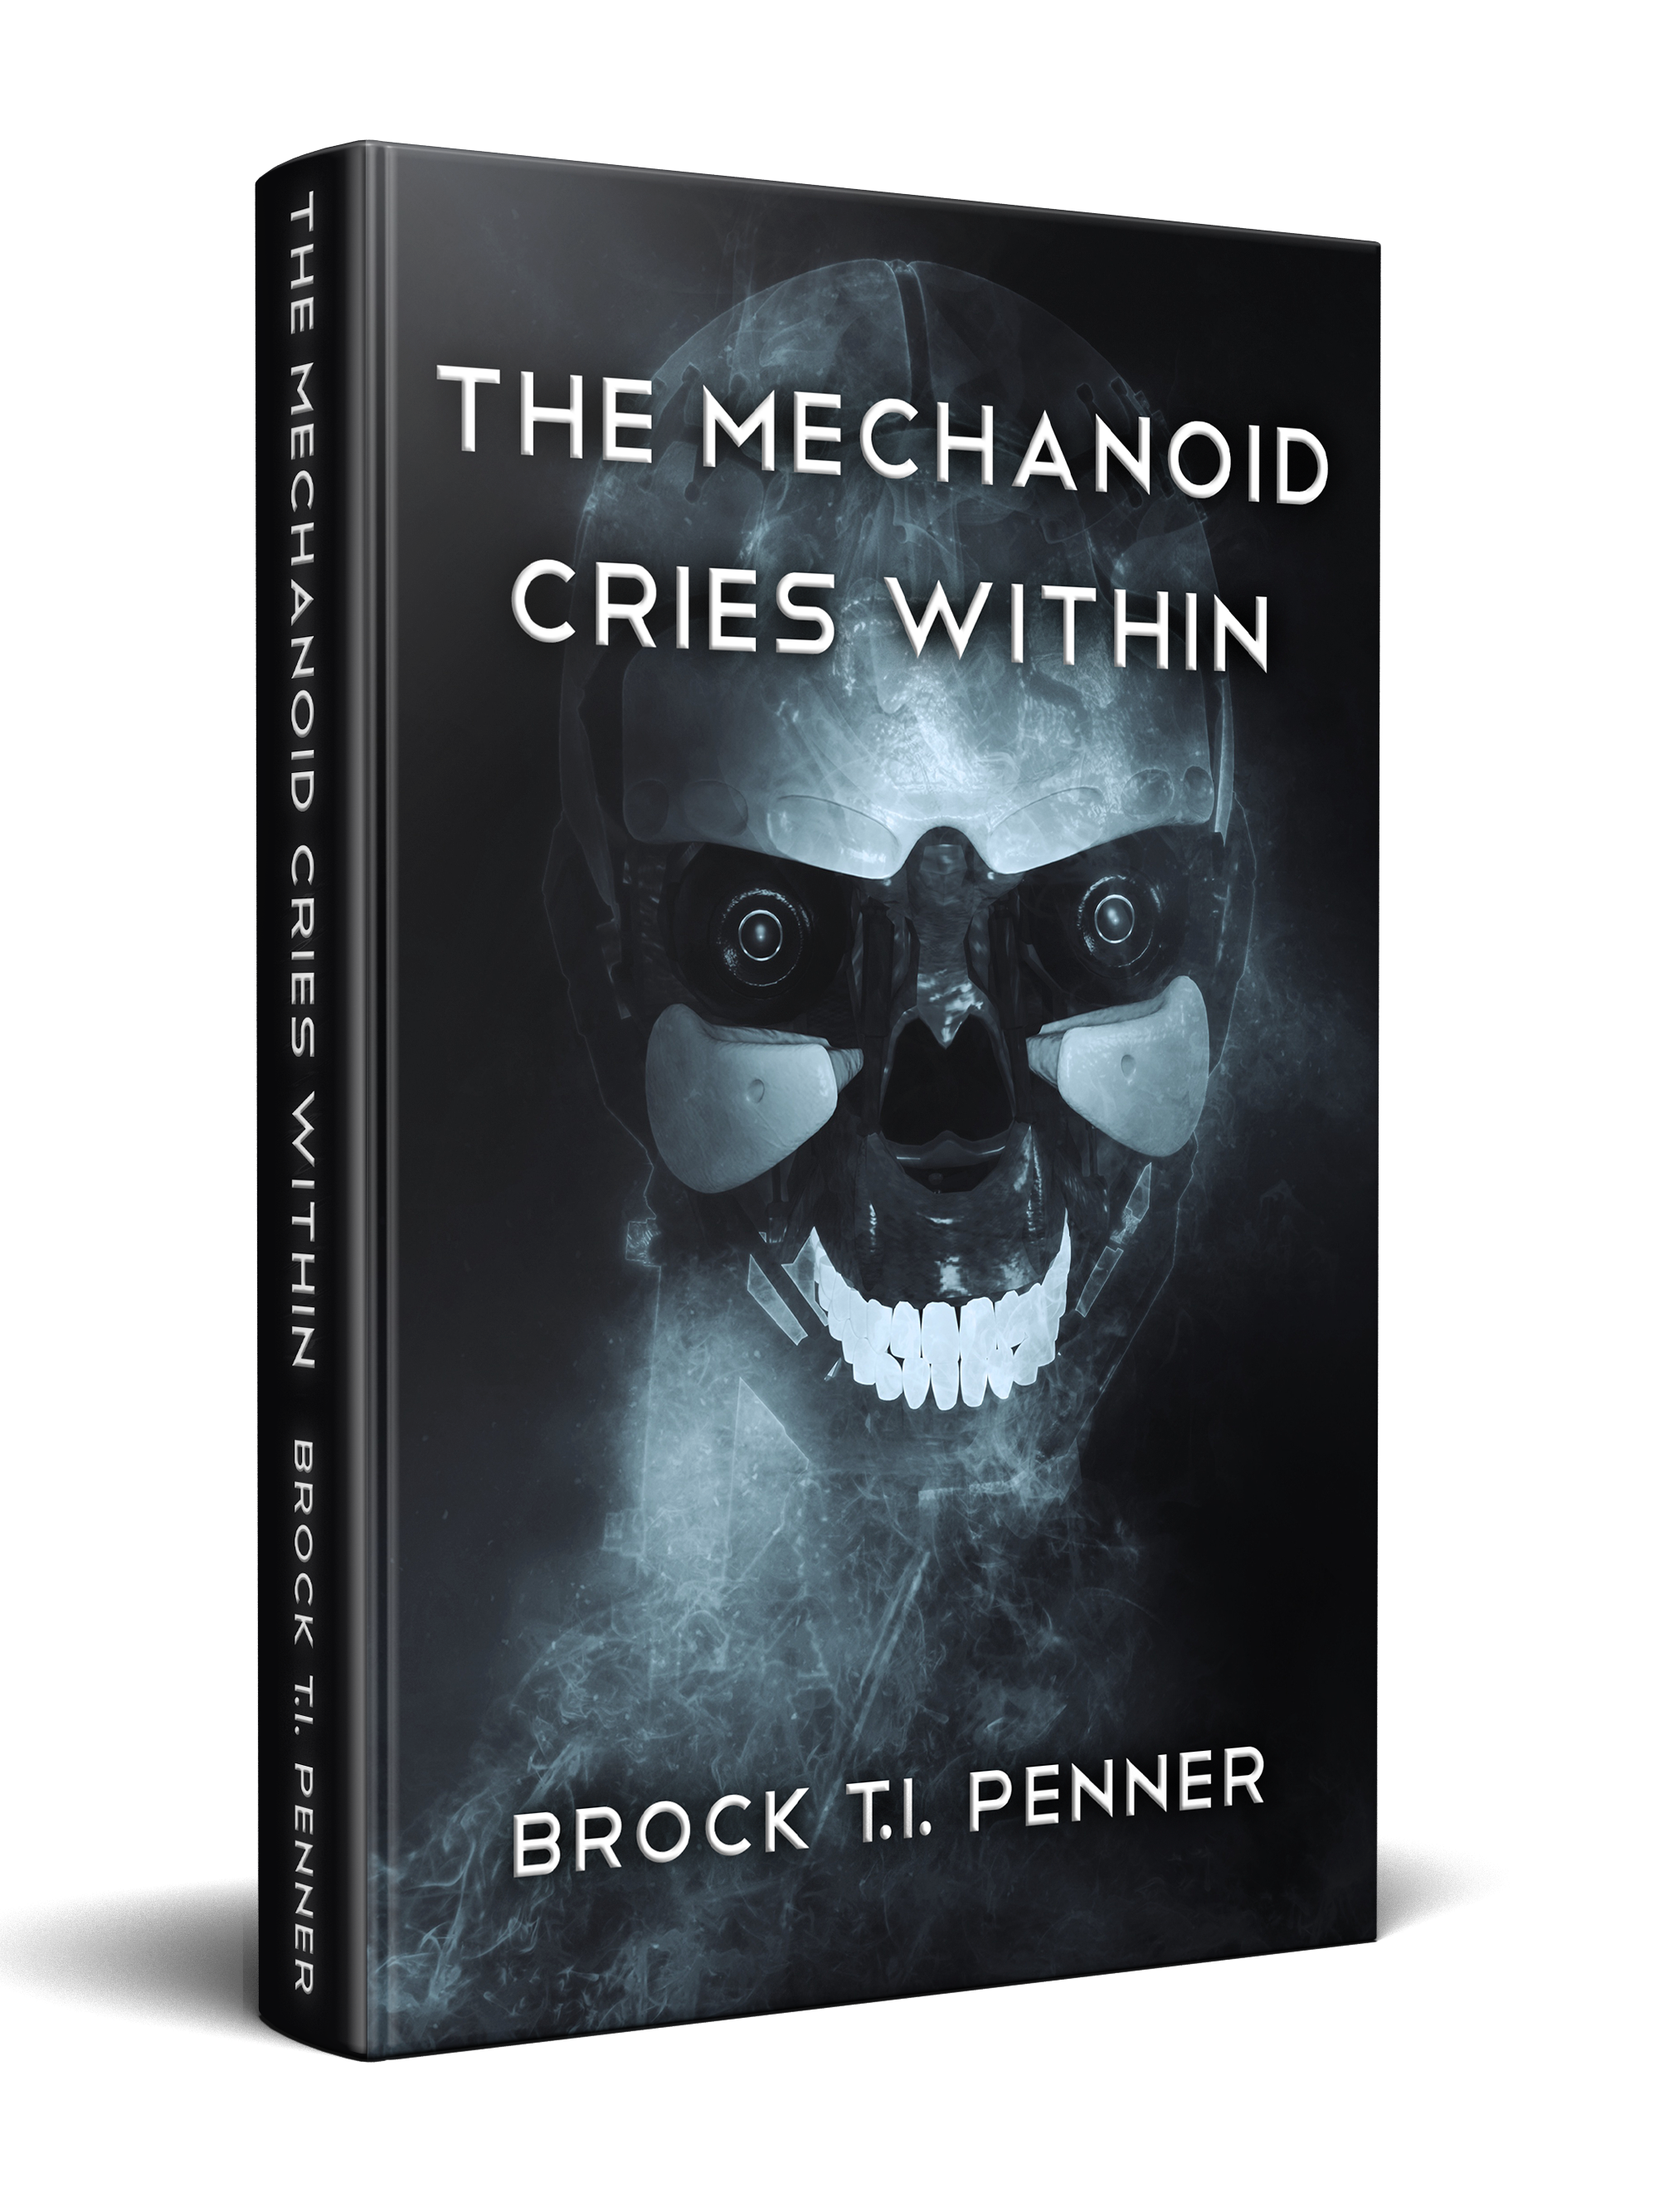 The Mechanoid Cries Within Cover. A skeletal, robotic face.